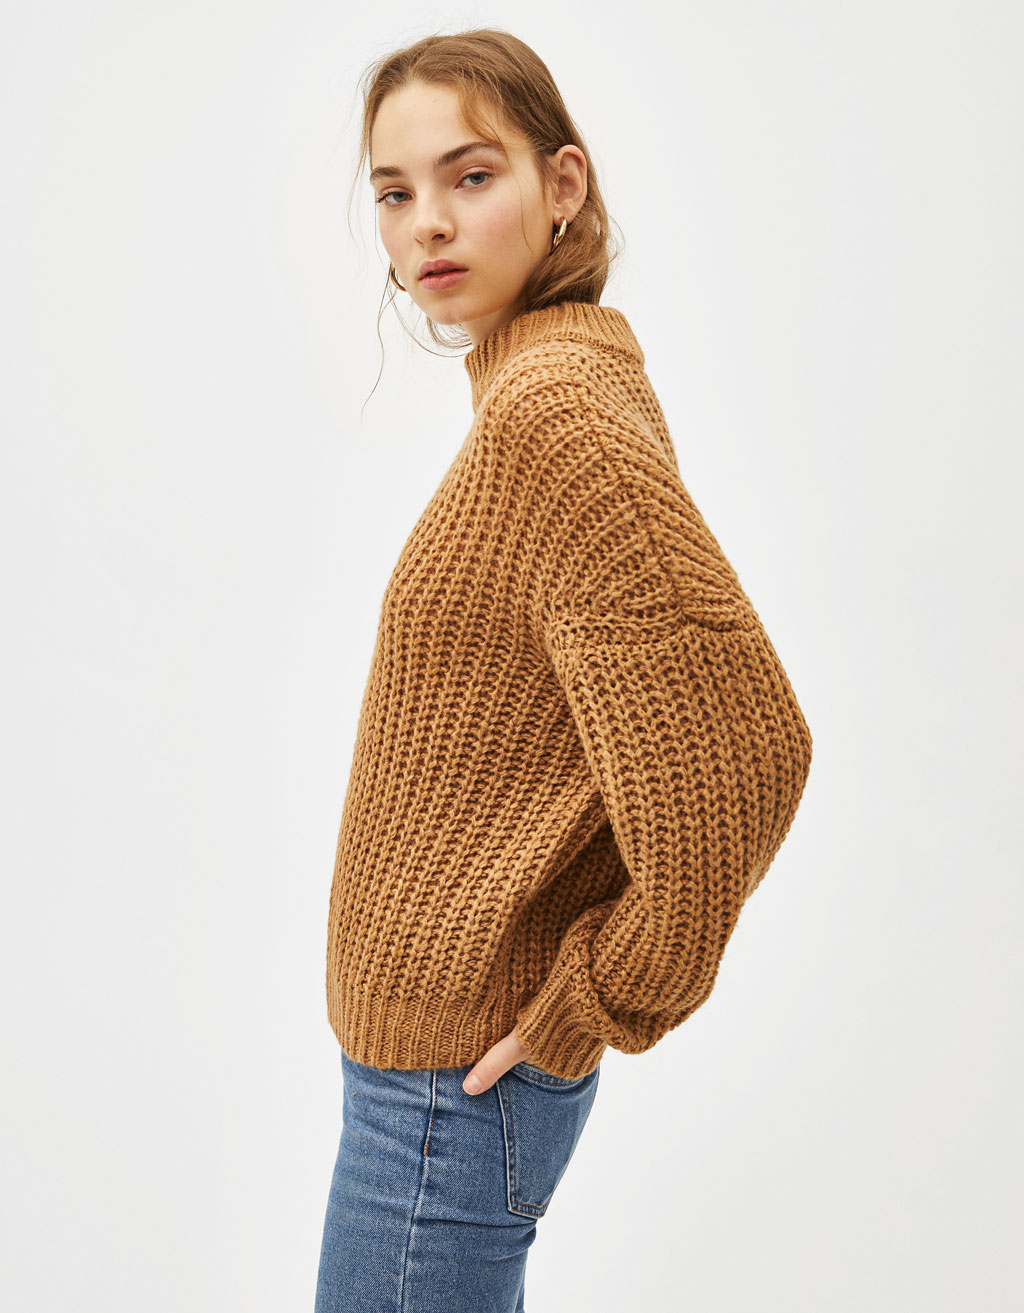 Oversized sweater with high neck